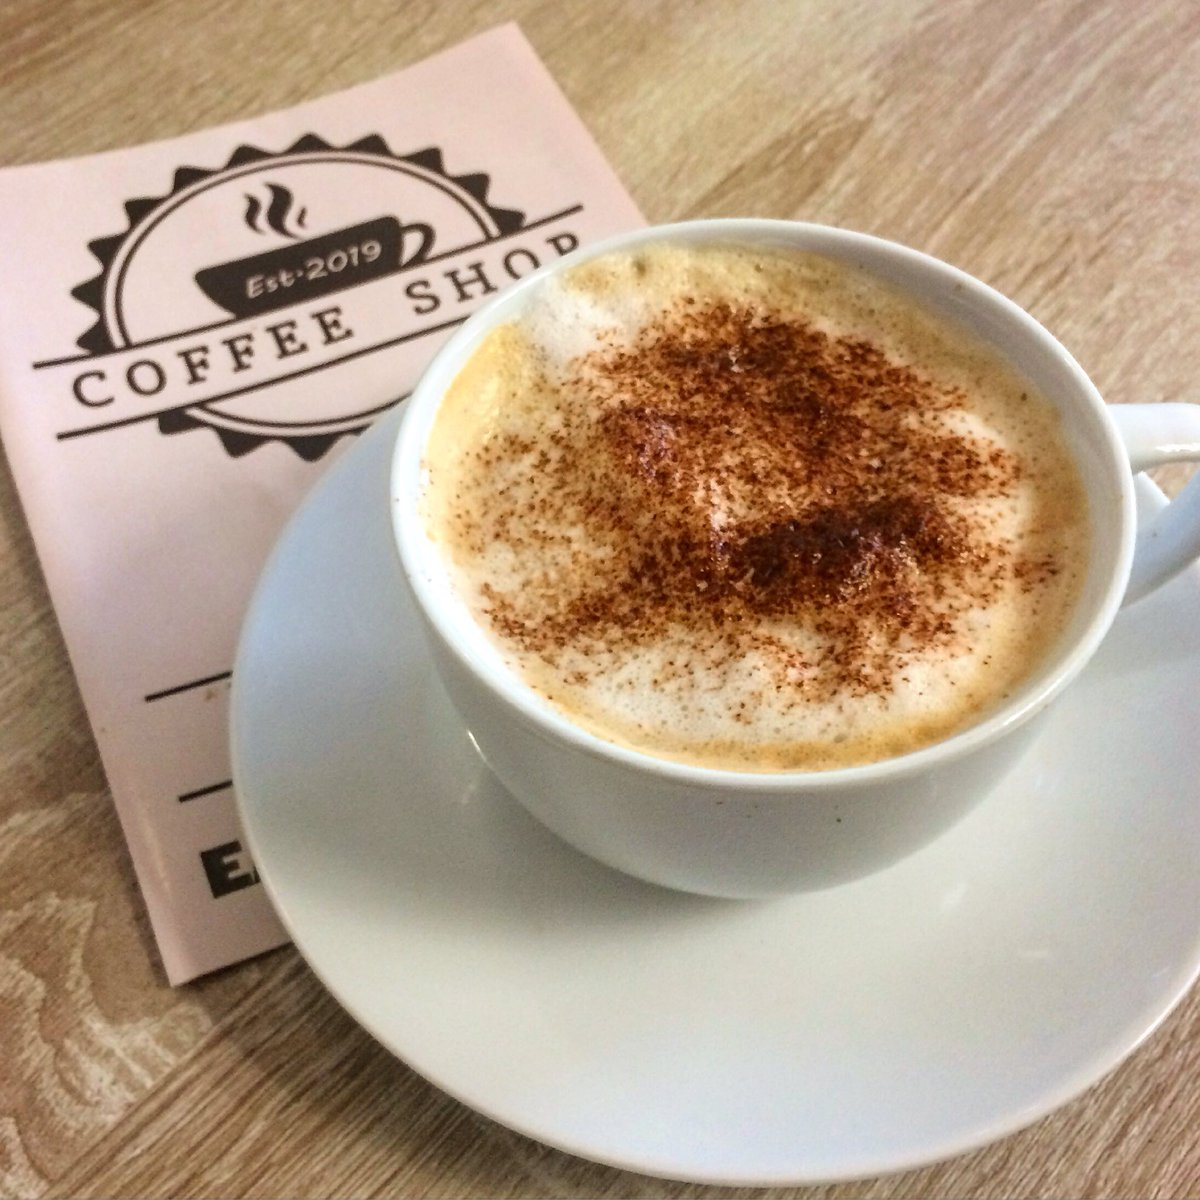 Coffee time at work. Busy morning and now I have 5mins to sit down. Come down and say hi.  Find us on lytham road just off the prom past the Manchester pub #coffee #coffeeshop #blackpool #local #localcoffee #lytham #lythamroad #teatime #teabreak #morning<br>http://pic.twitter.com/C54wVvgmTG